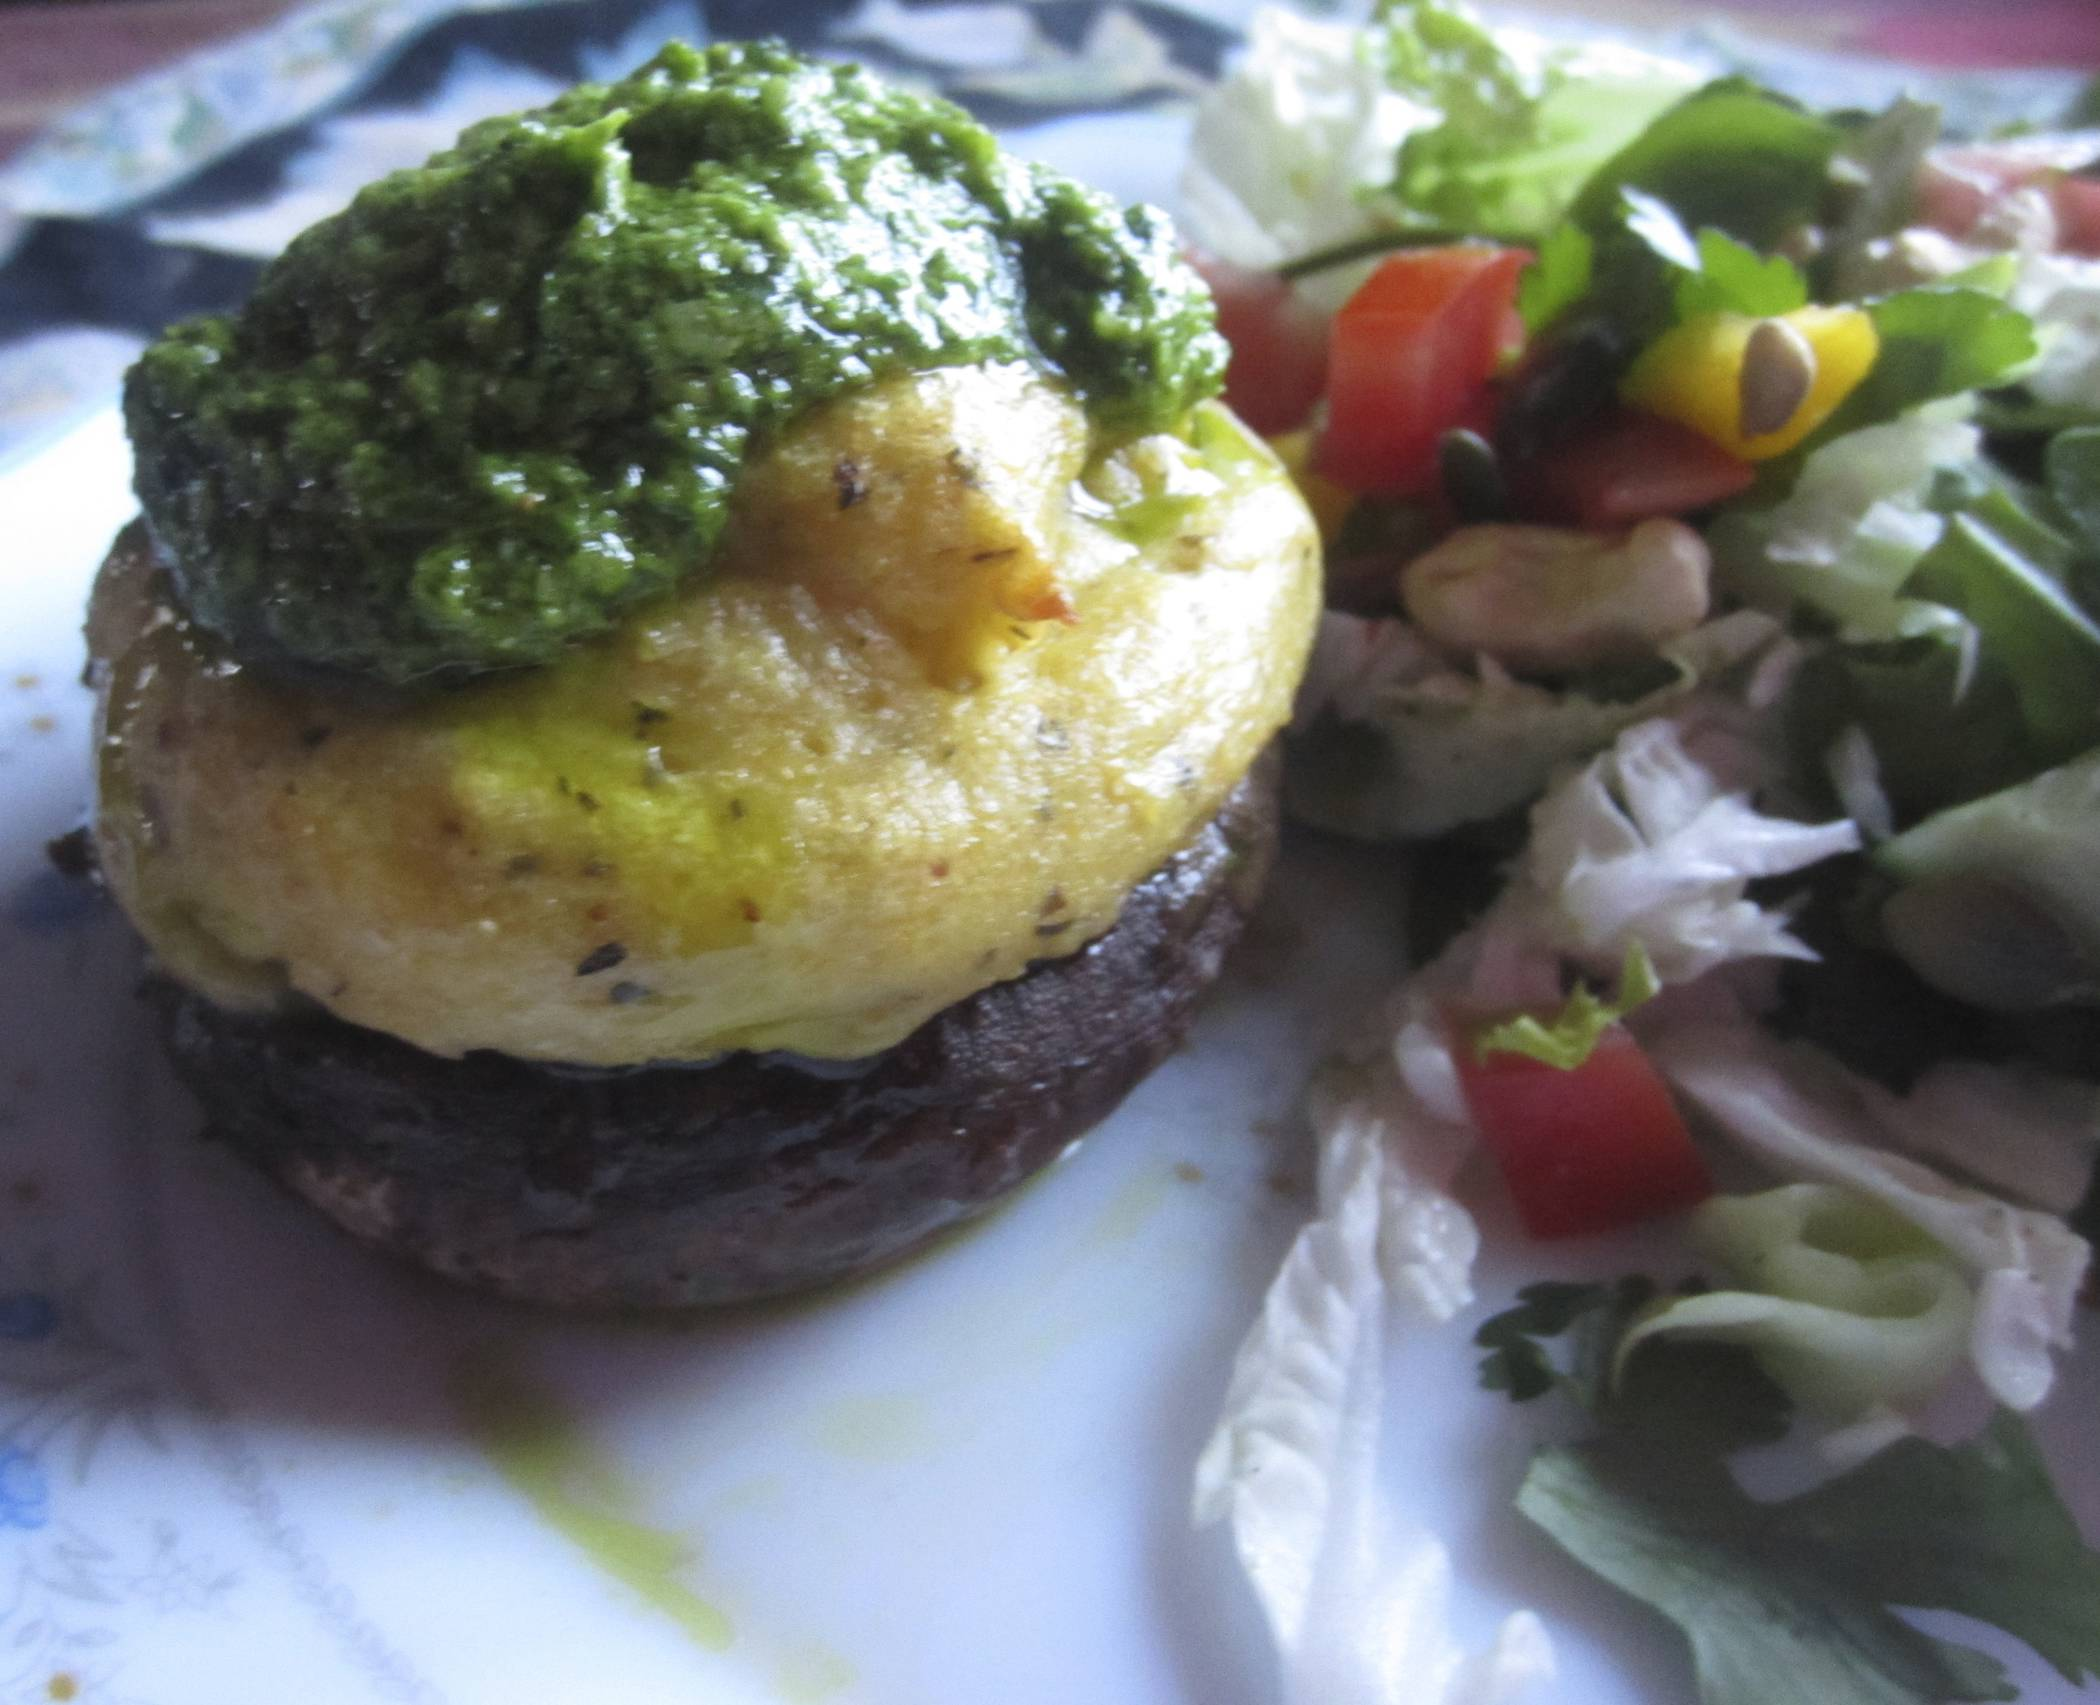 Portobello mushrooms with Polenta and Wild Garlic Pesto